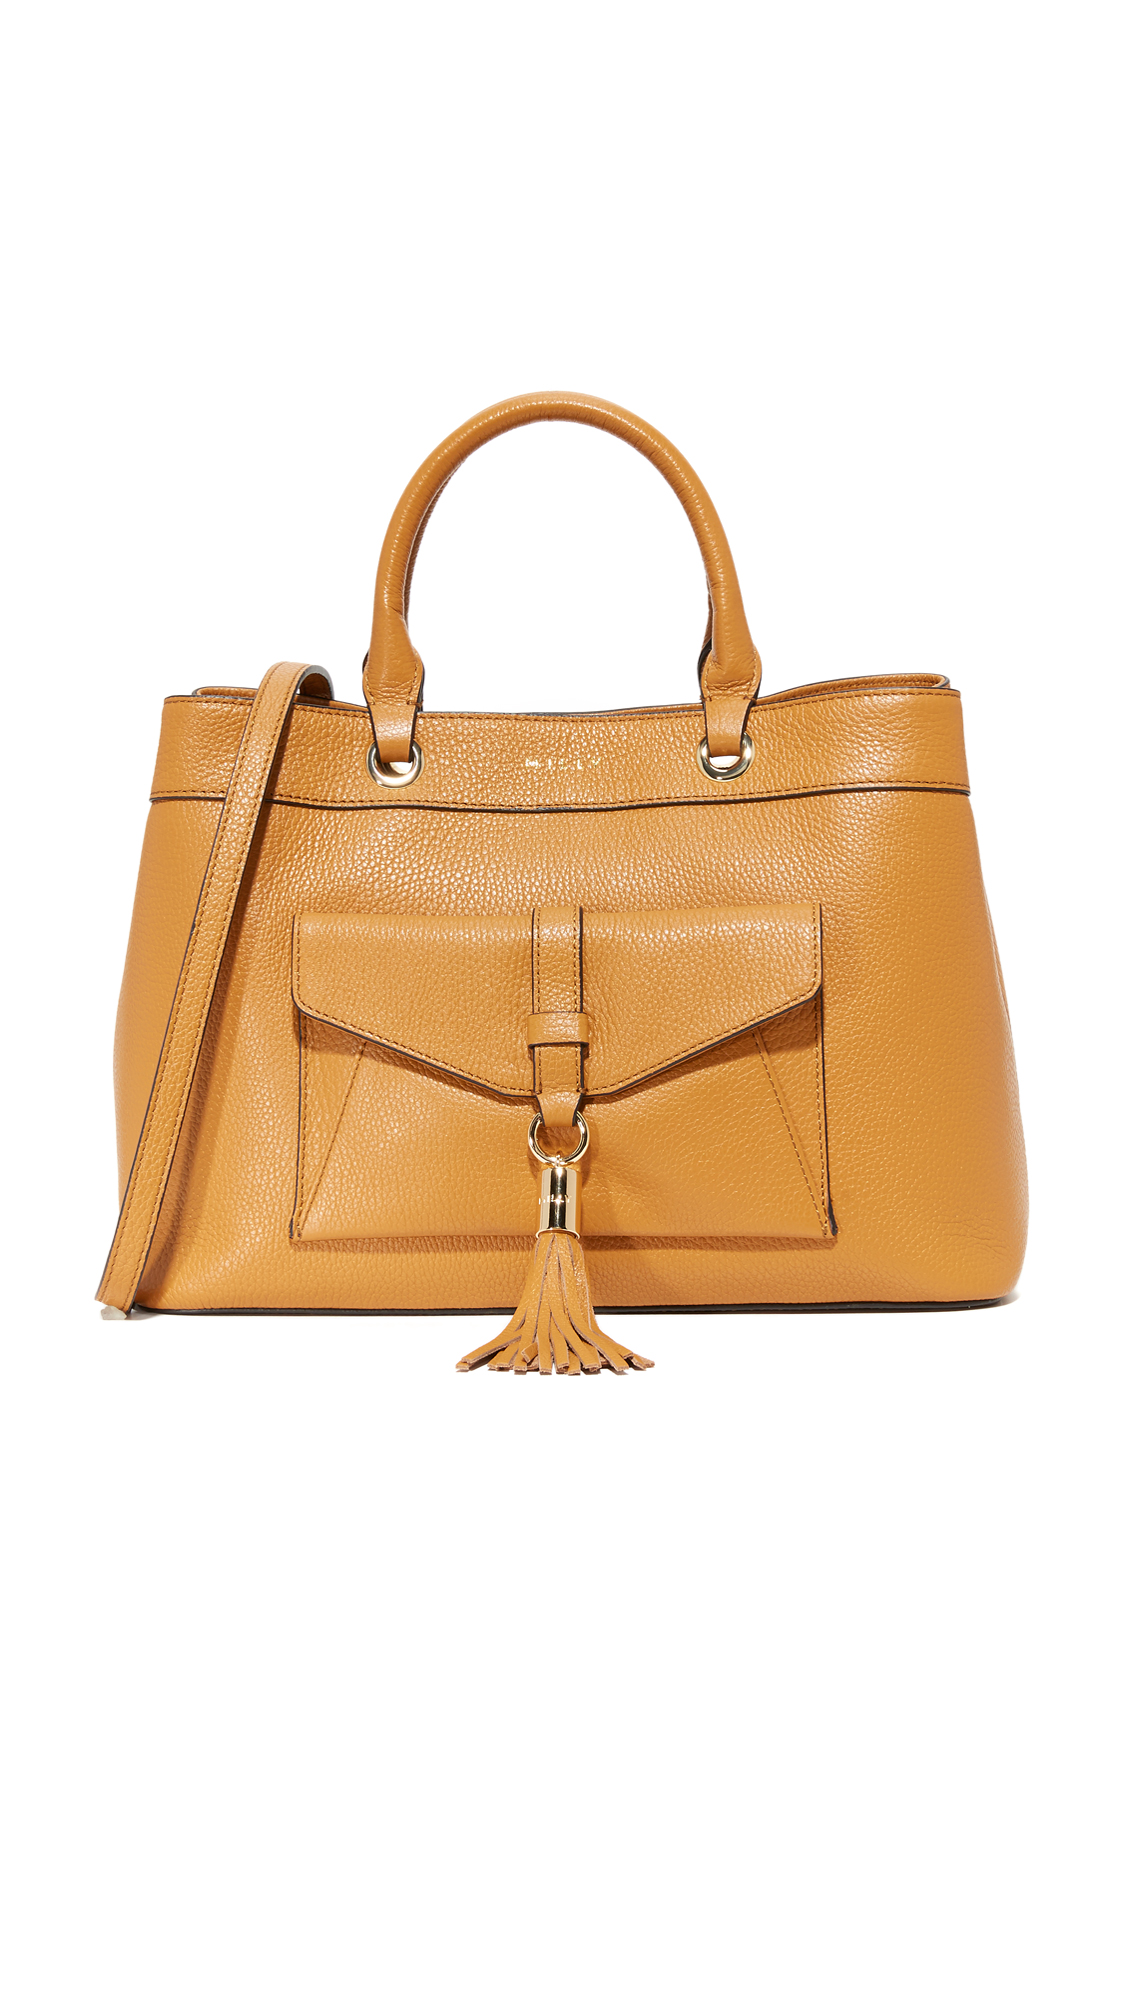 milly female milly astor tote bag caramel